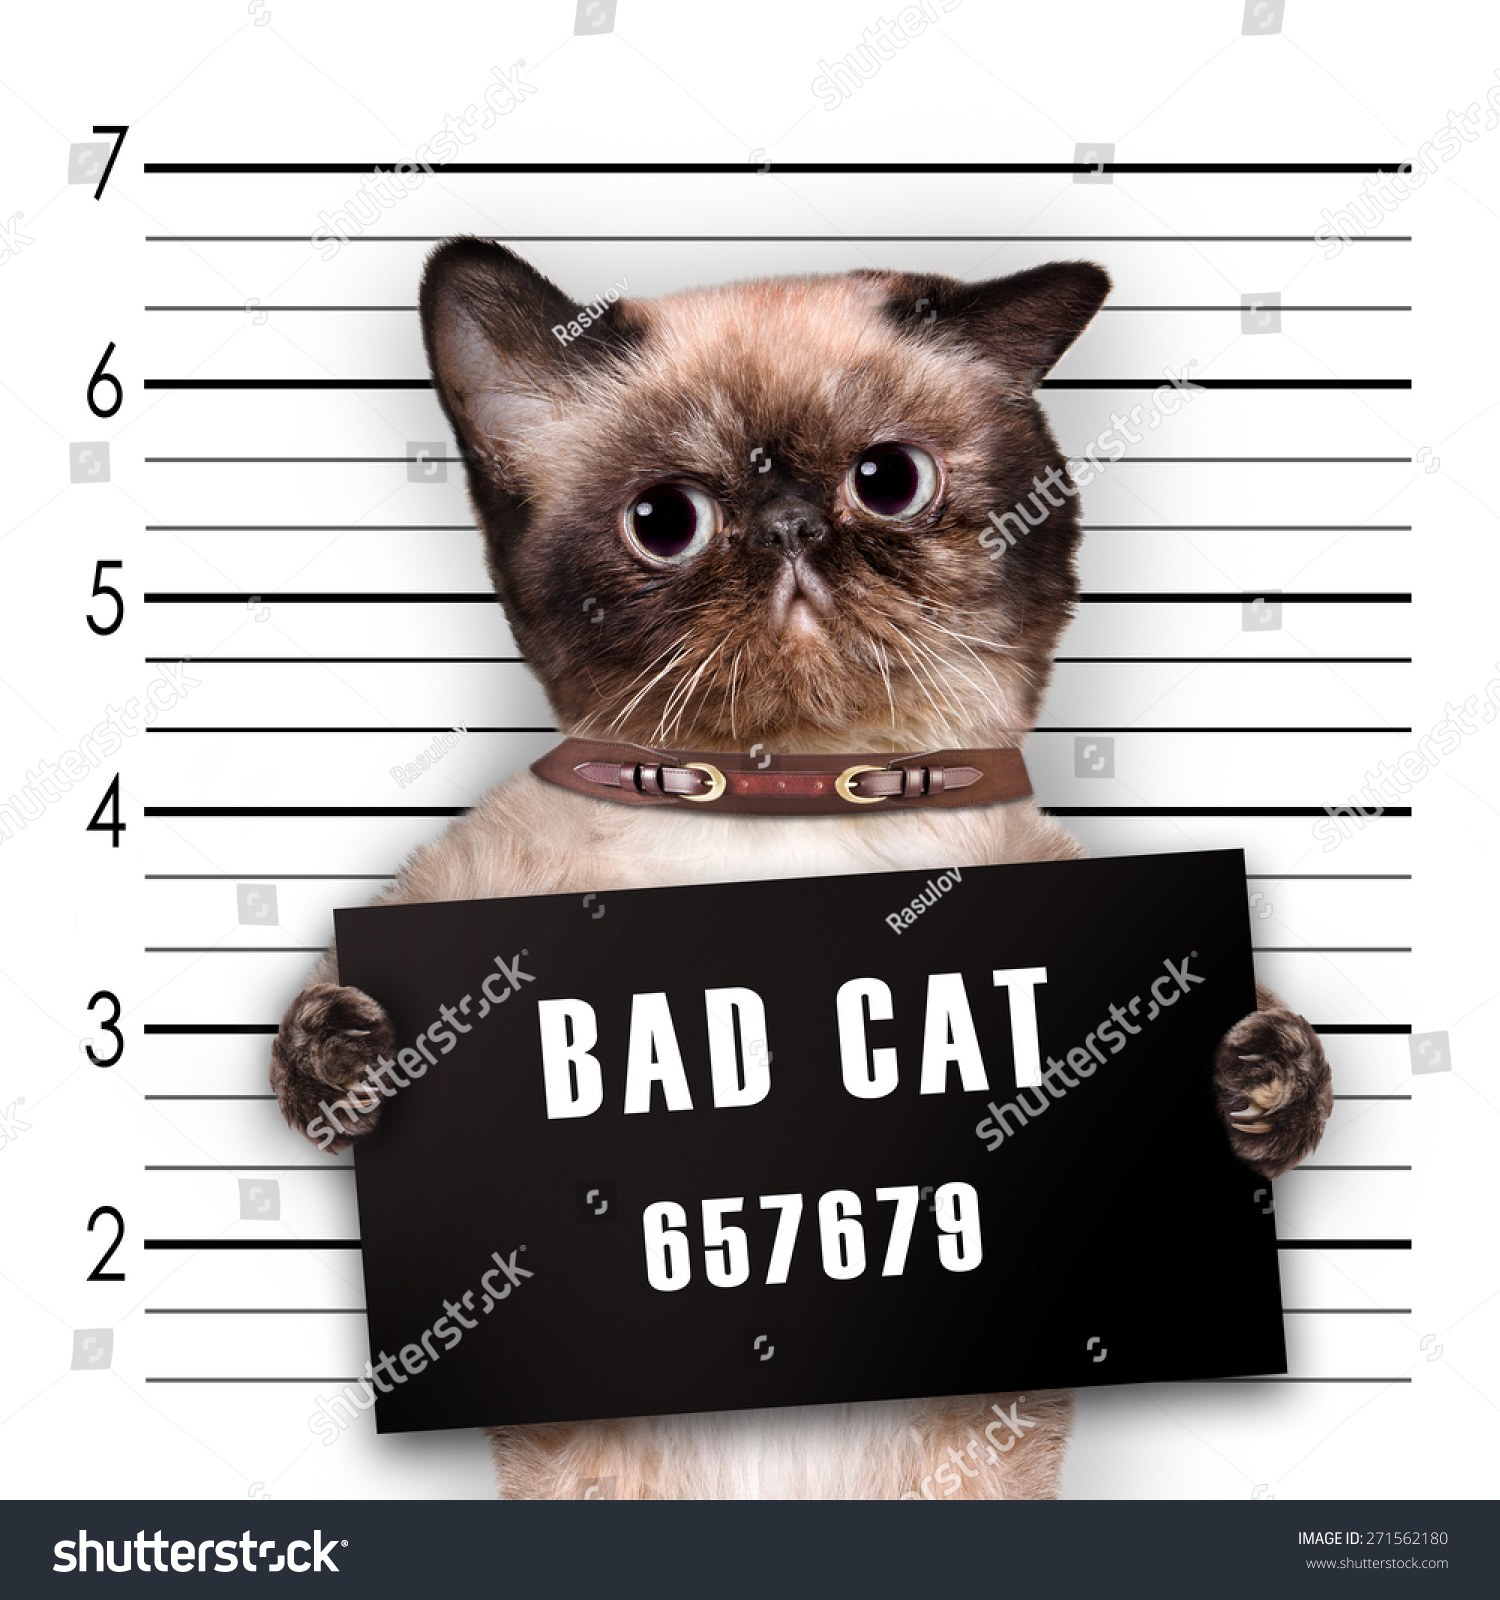 Stock Photo Bad Cat